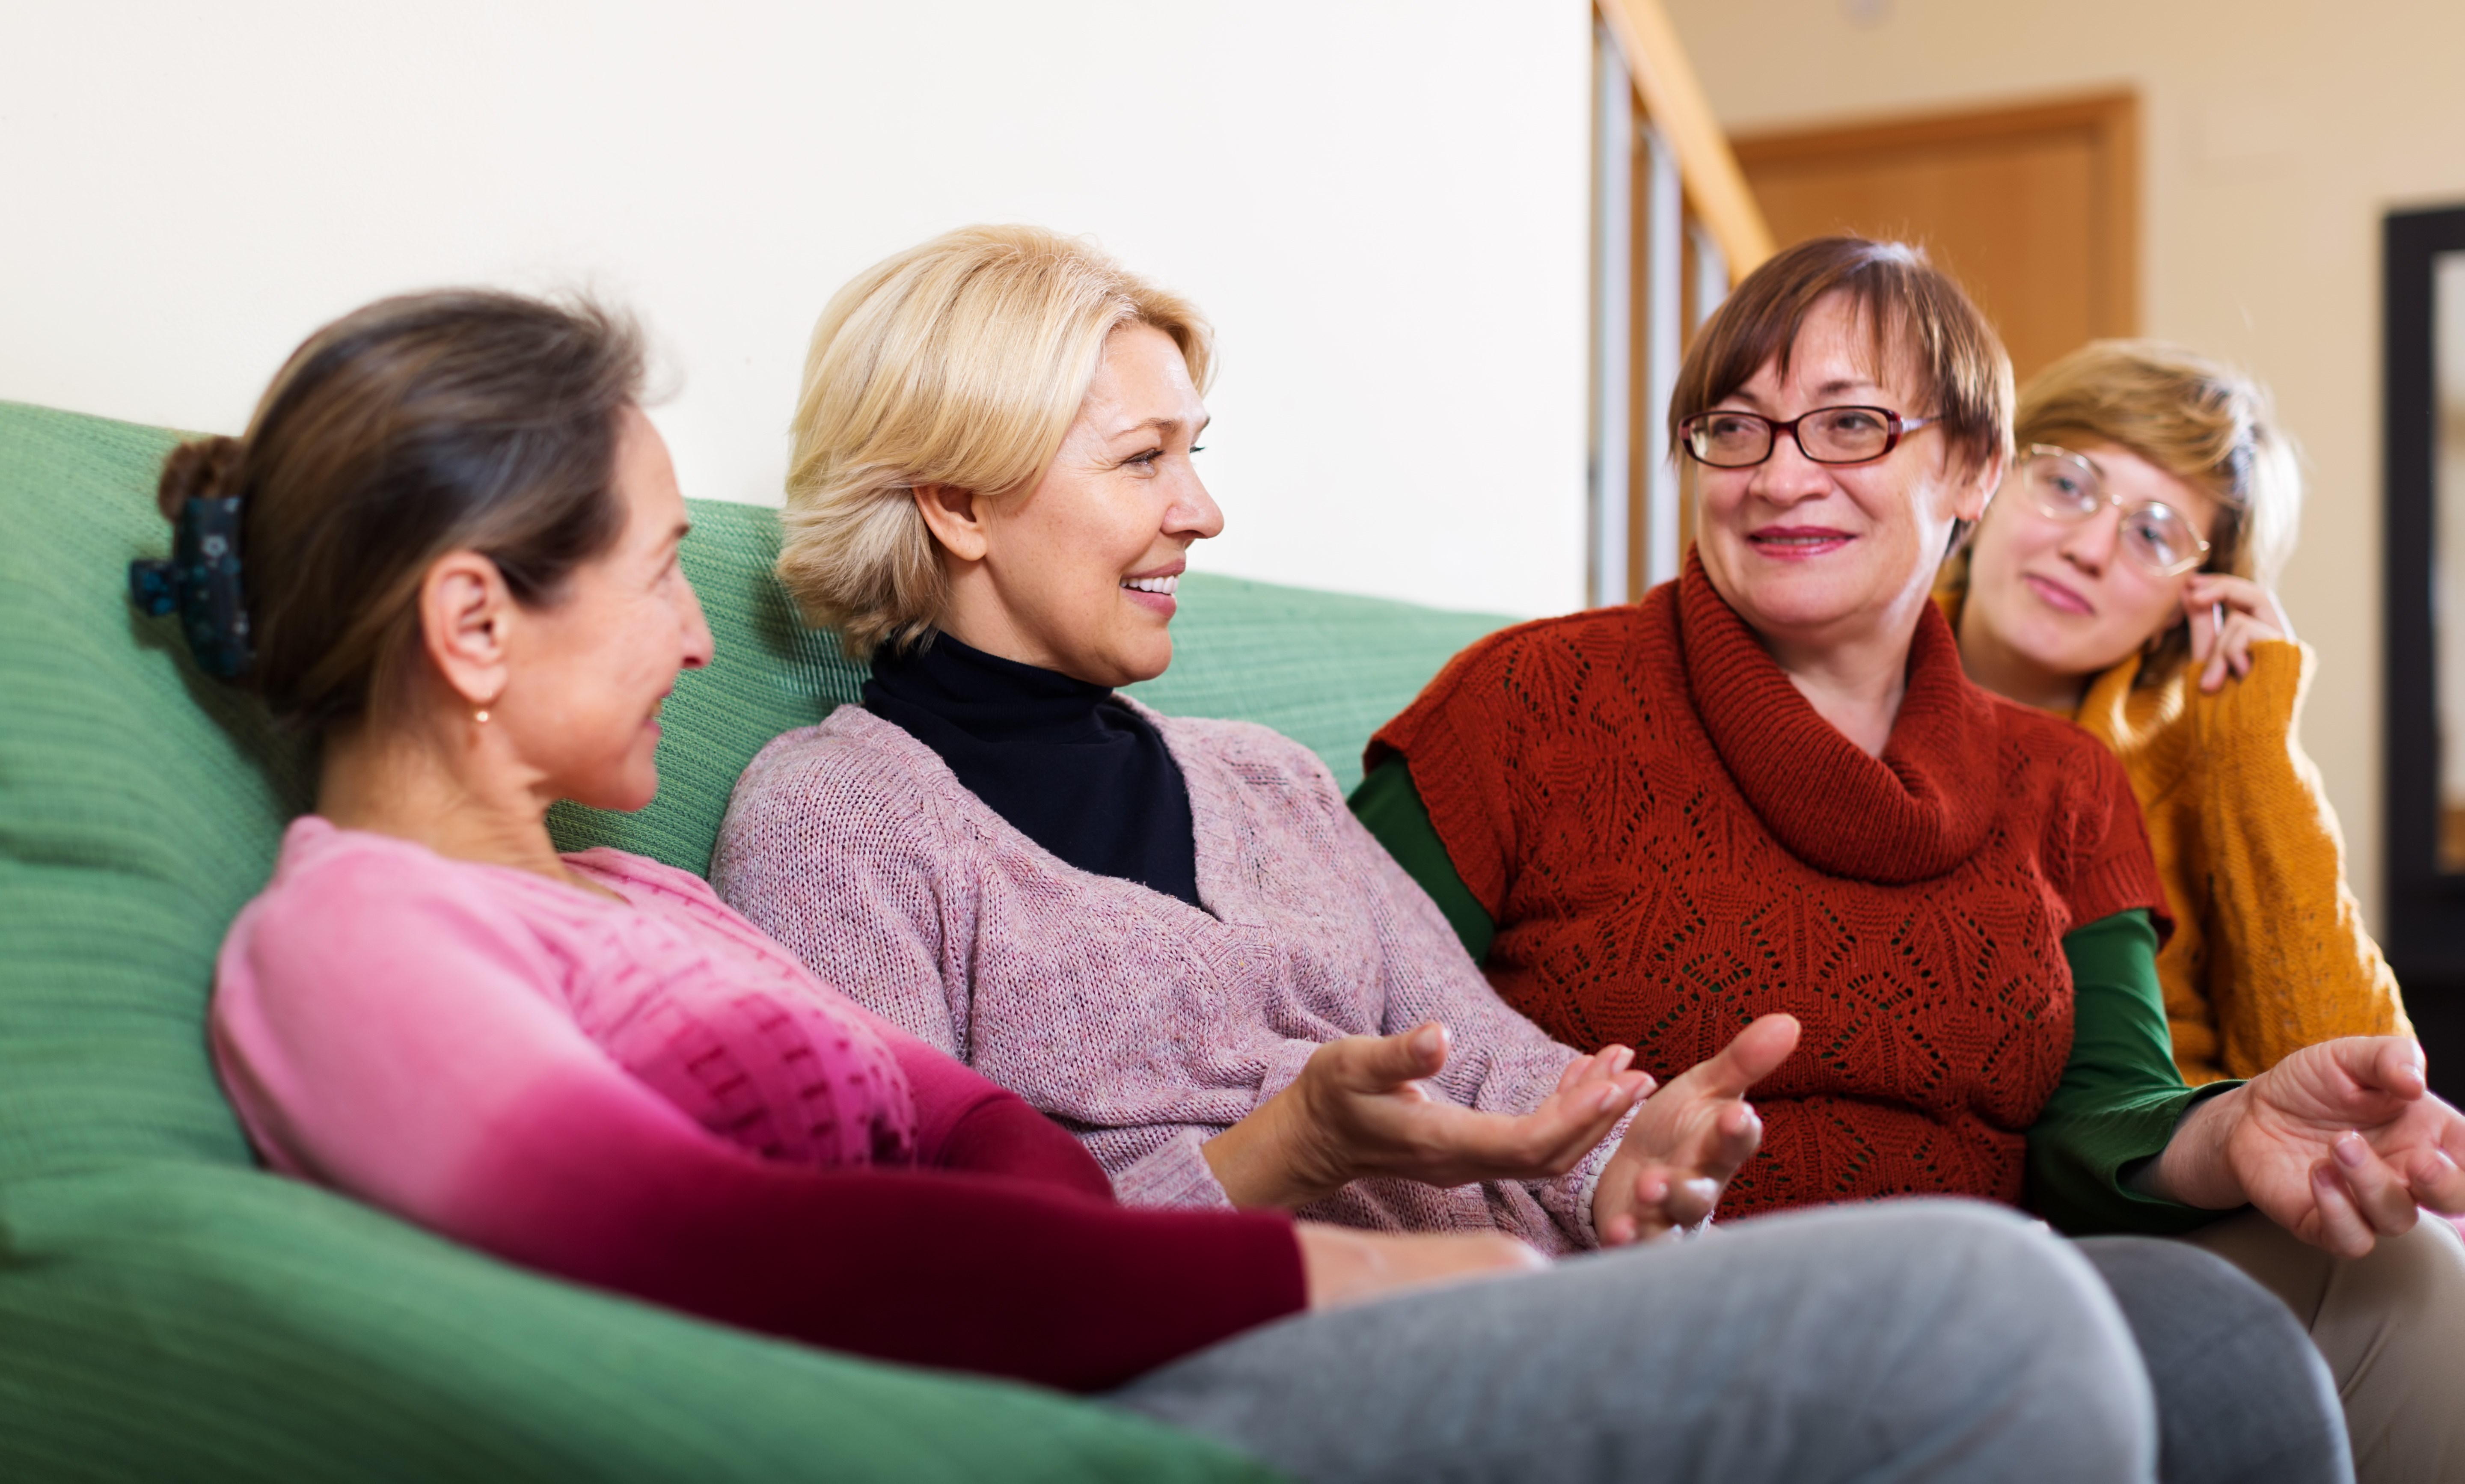 Four women chatting on a sofa